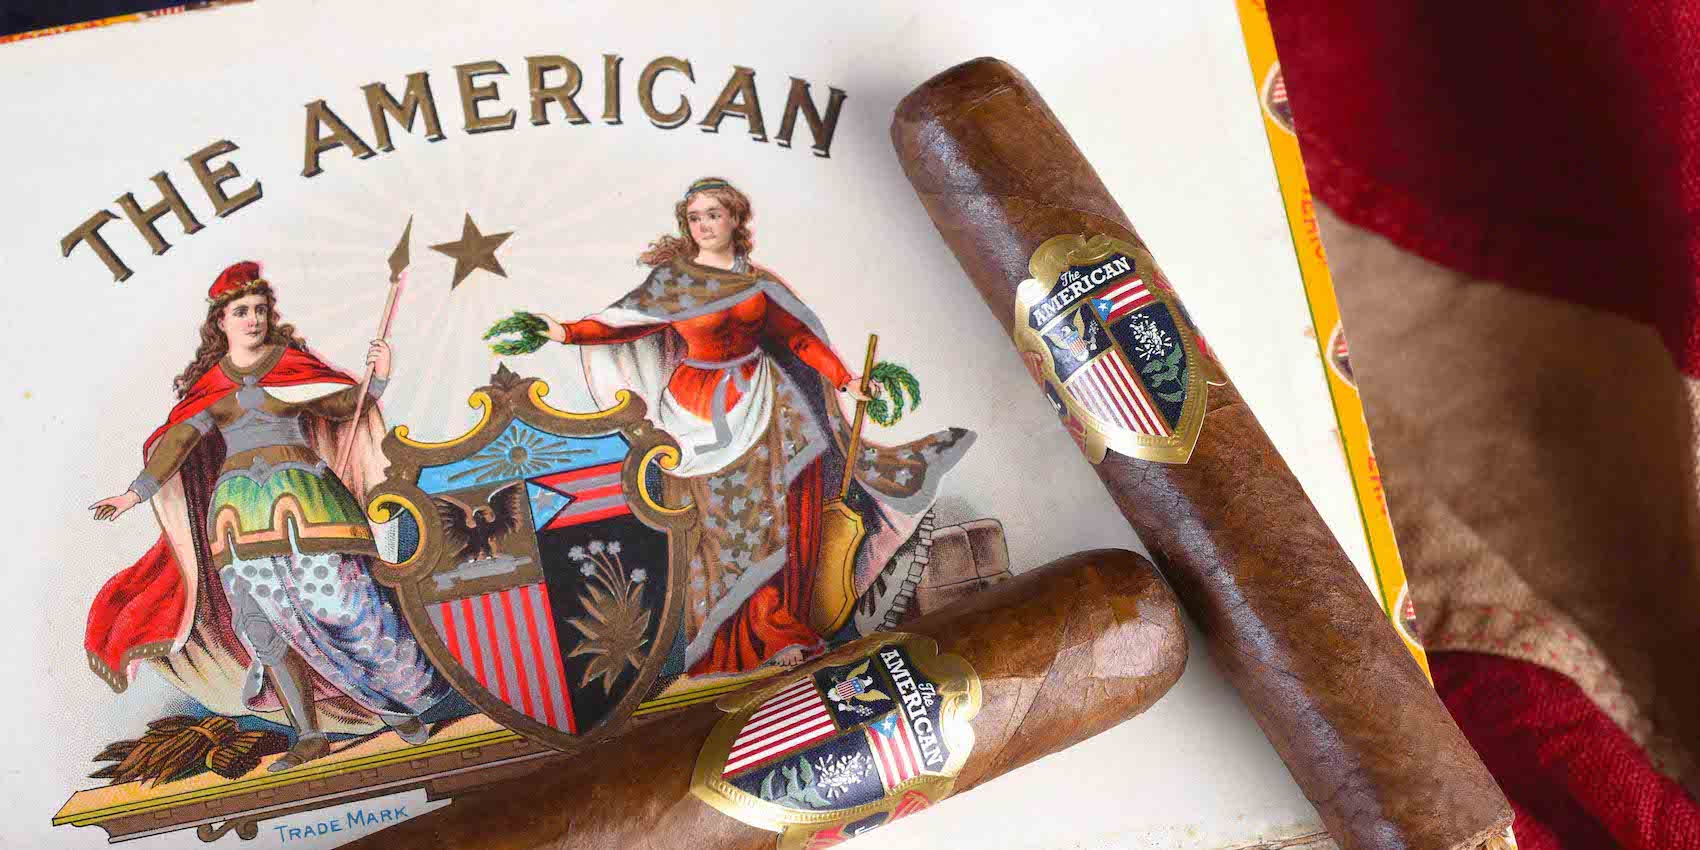 The American Cigar Making Tradition